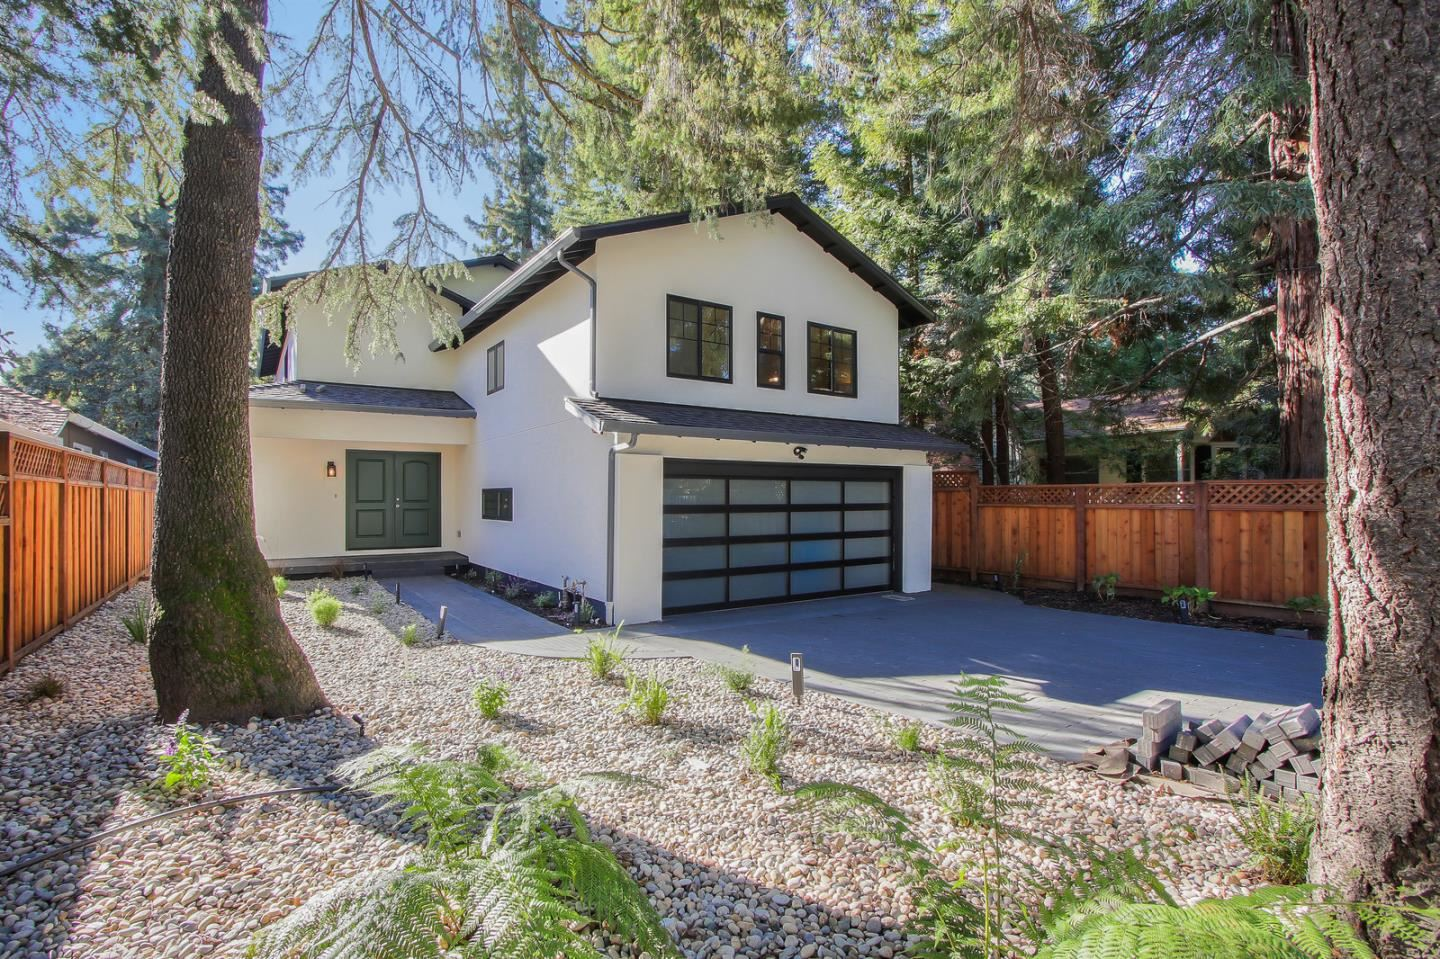 Photo for 226 Selby LN, ATHERTON, CA 94027 (MLS # ML81798601)